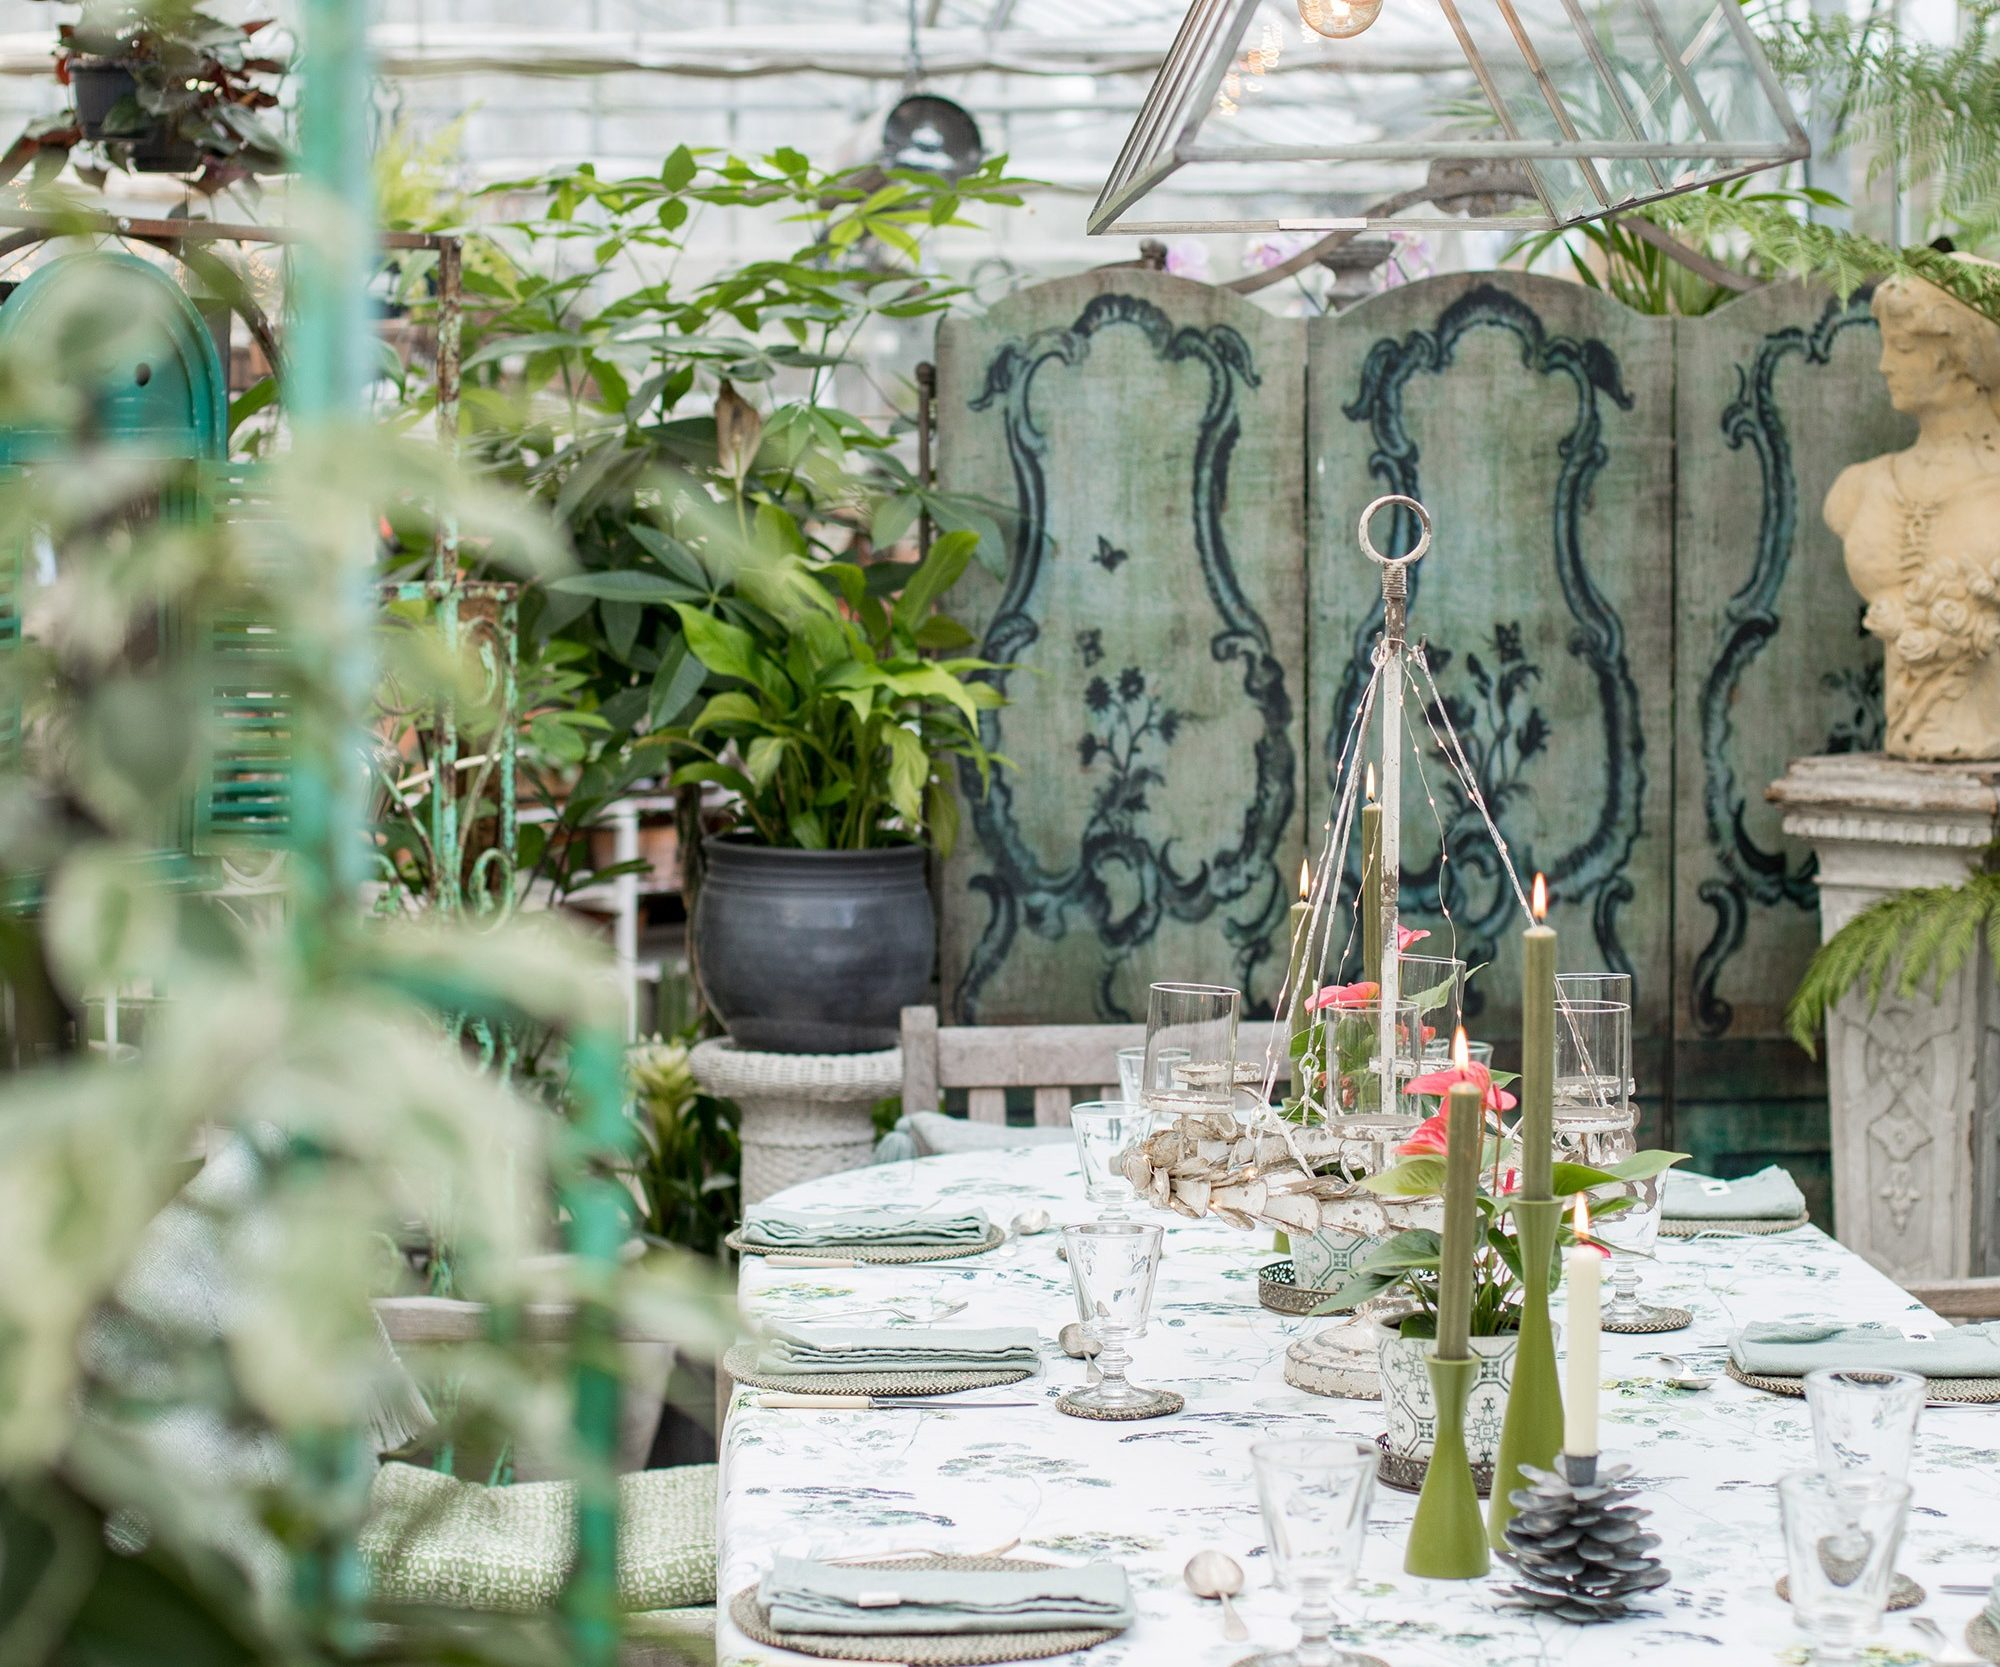 The Garden Room, a private venue at the Duchy Nursery with a dining table and a blue wooden screen.